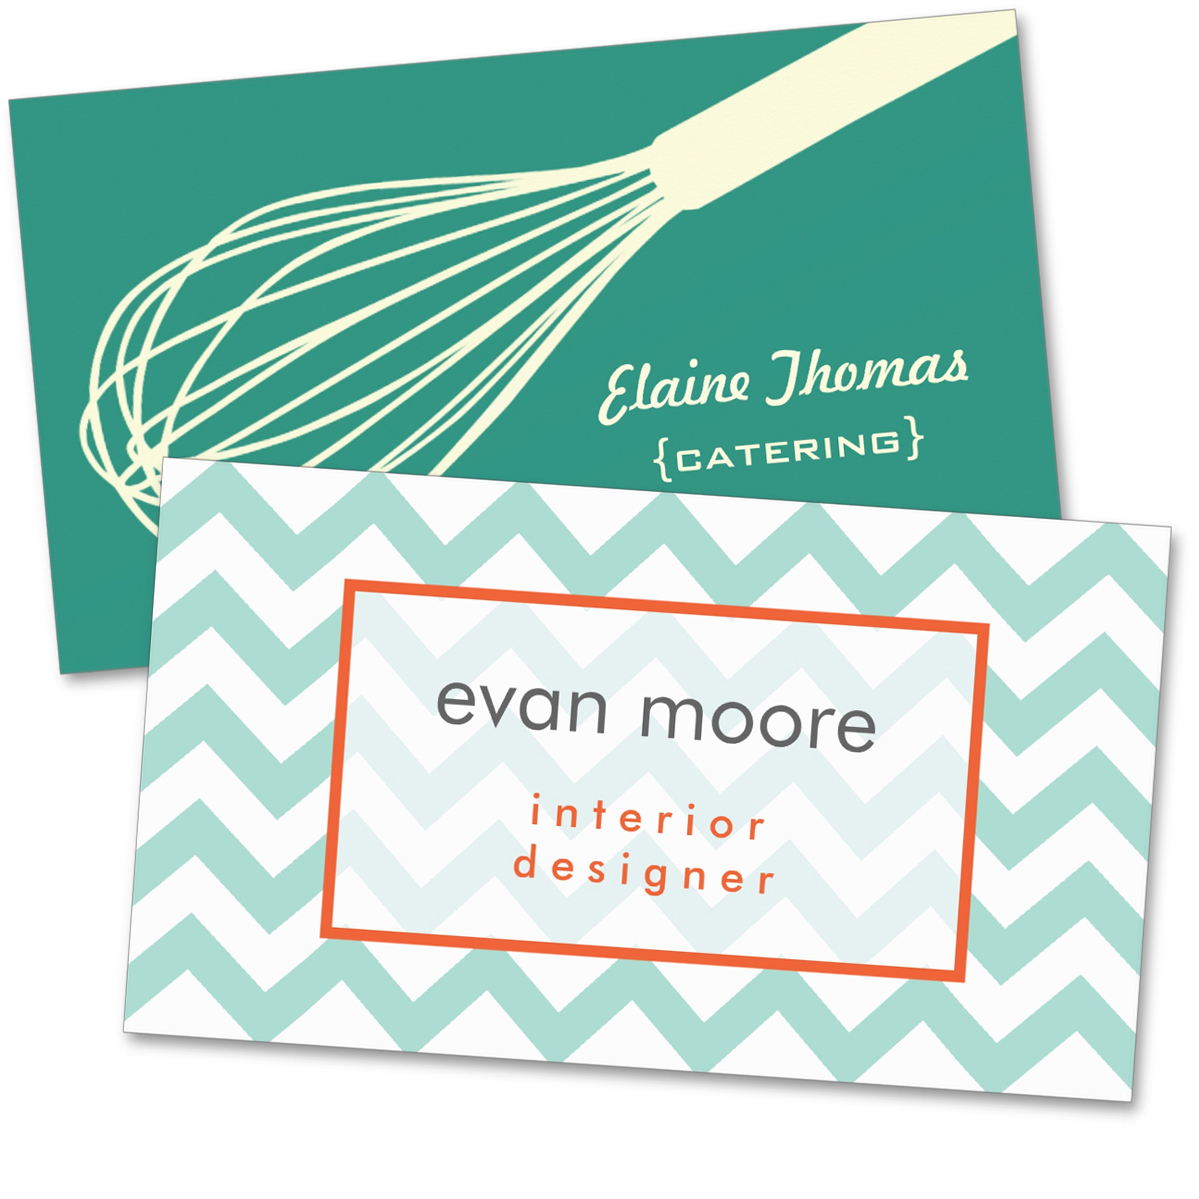 Whisk Catering Card    Chevron Business Card